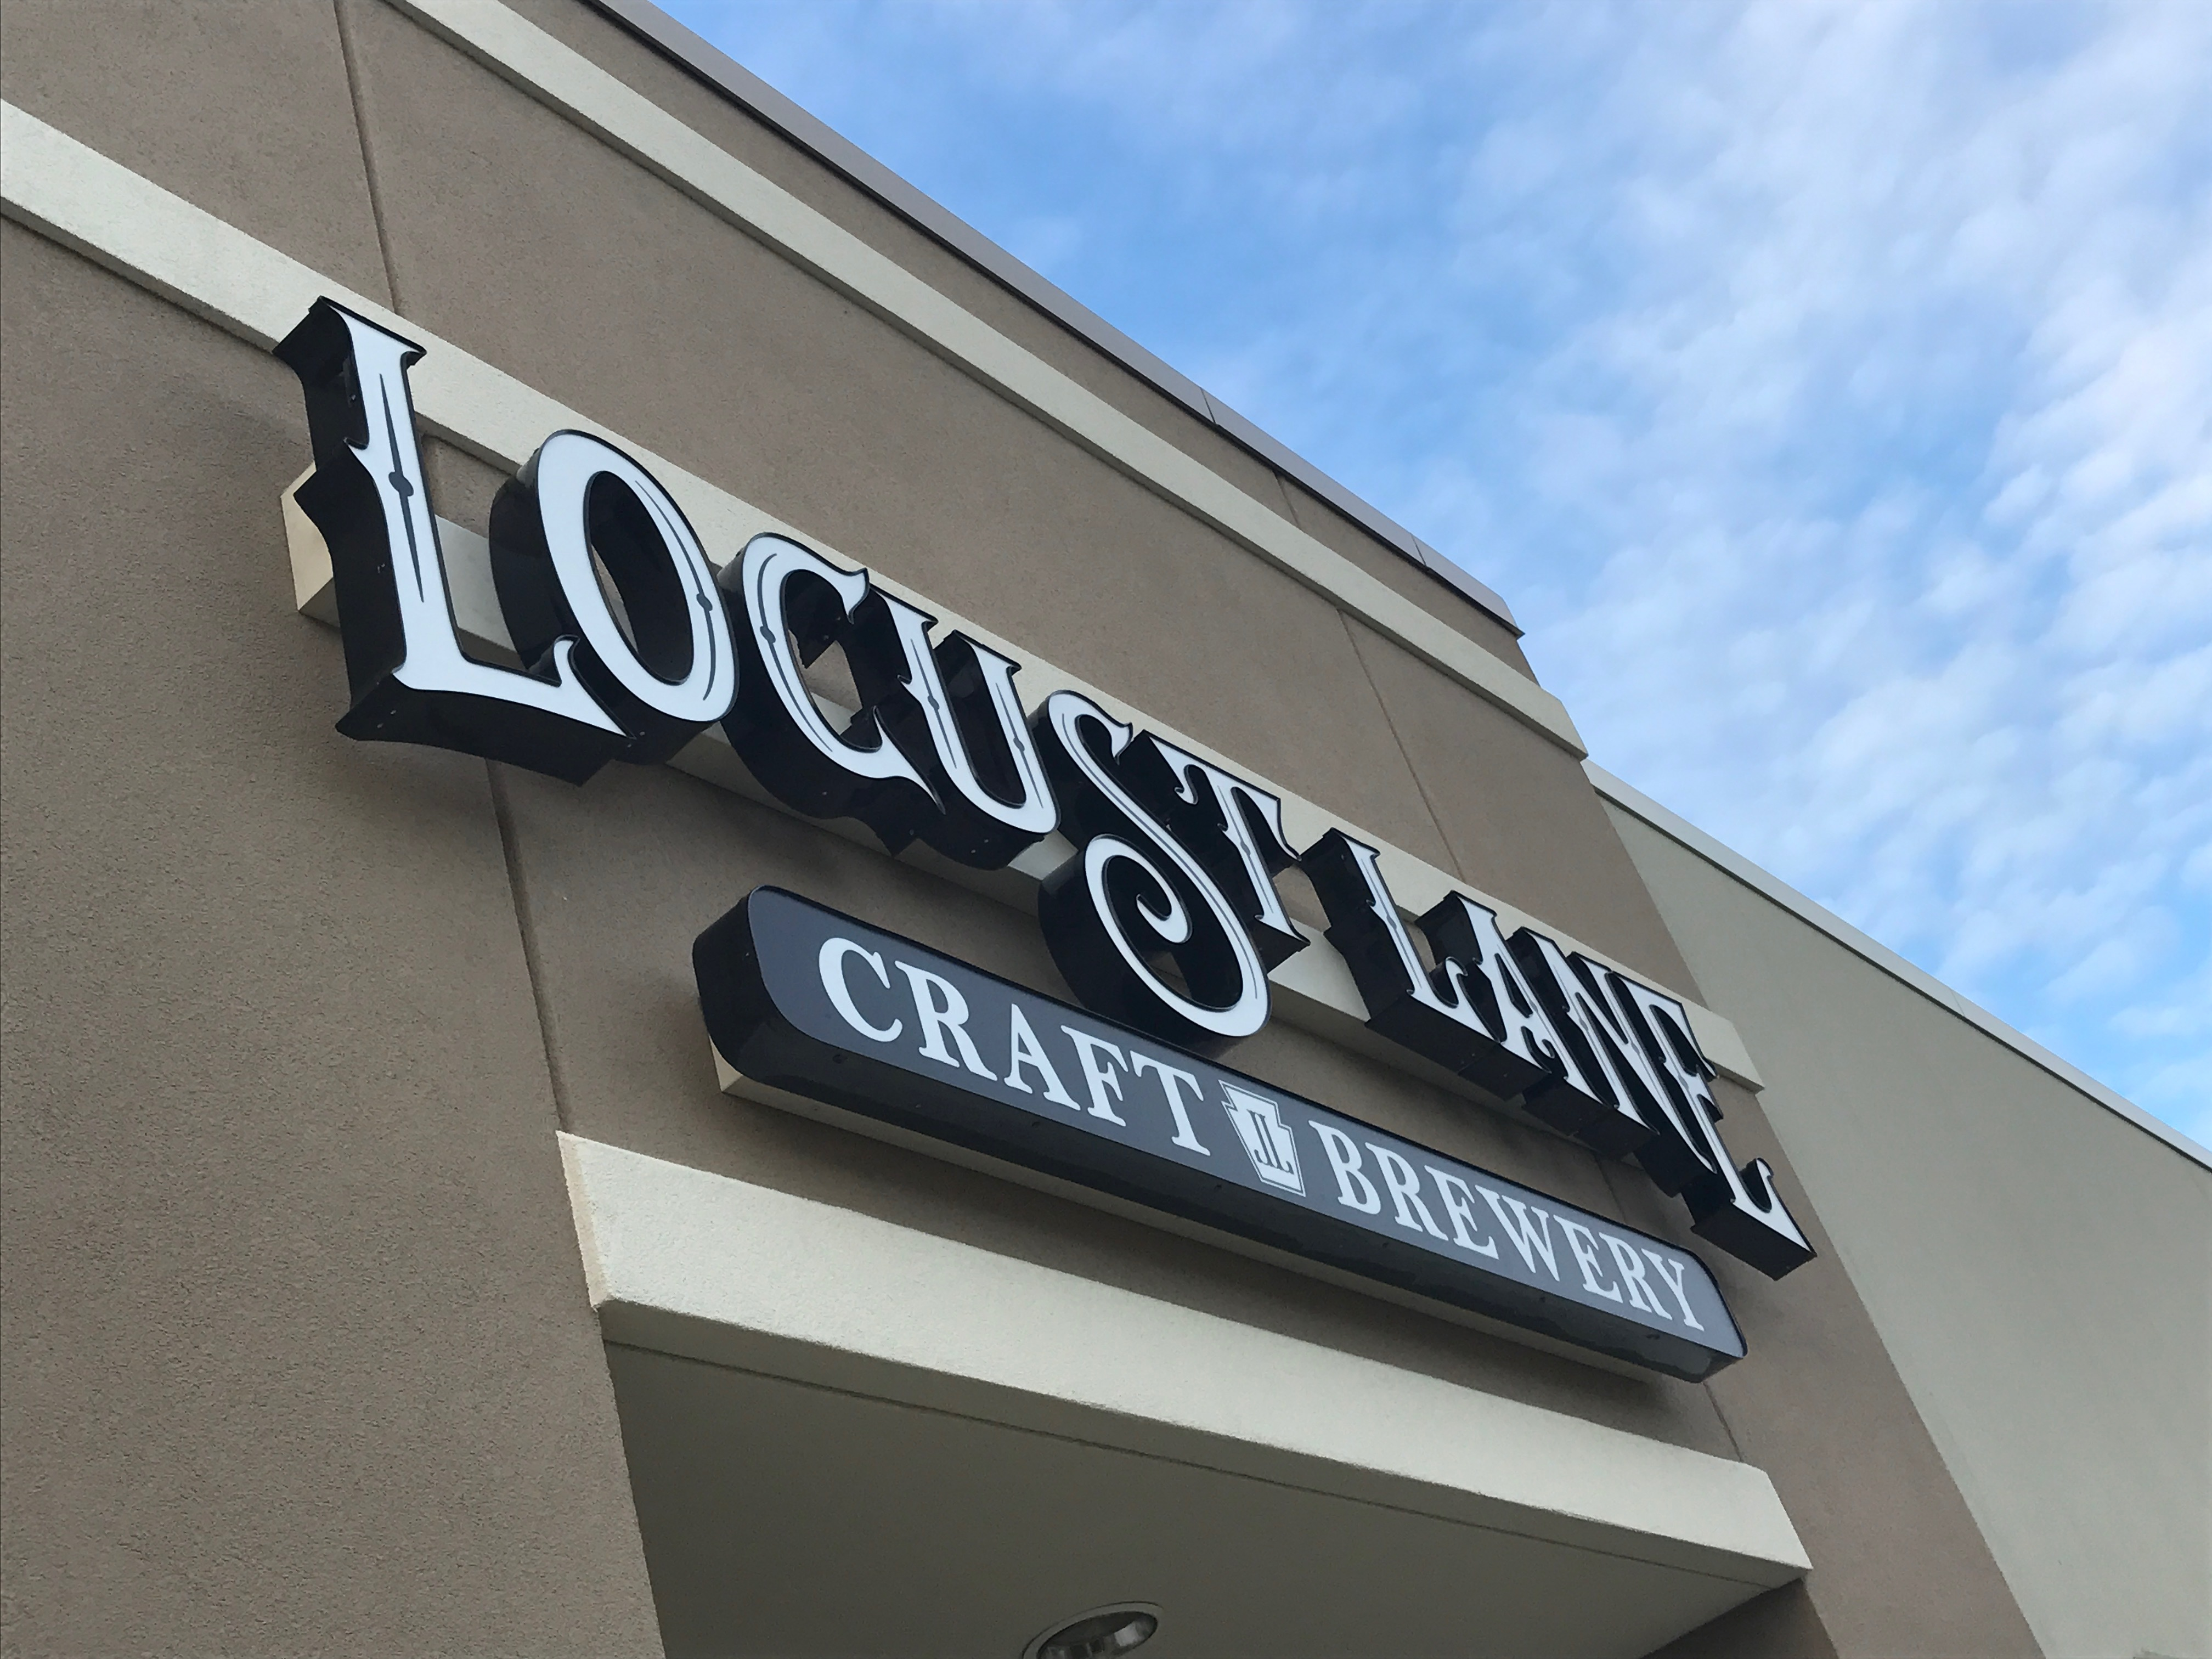 Locust Lane Craft Brewery in Malvern to Celebrate Grand Opening on April 1 and 2